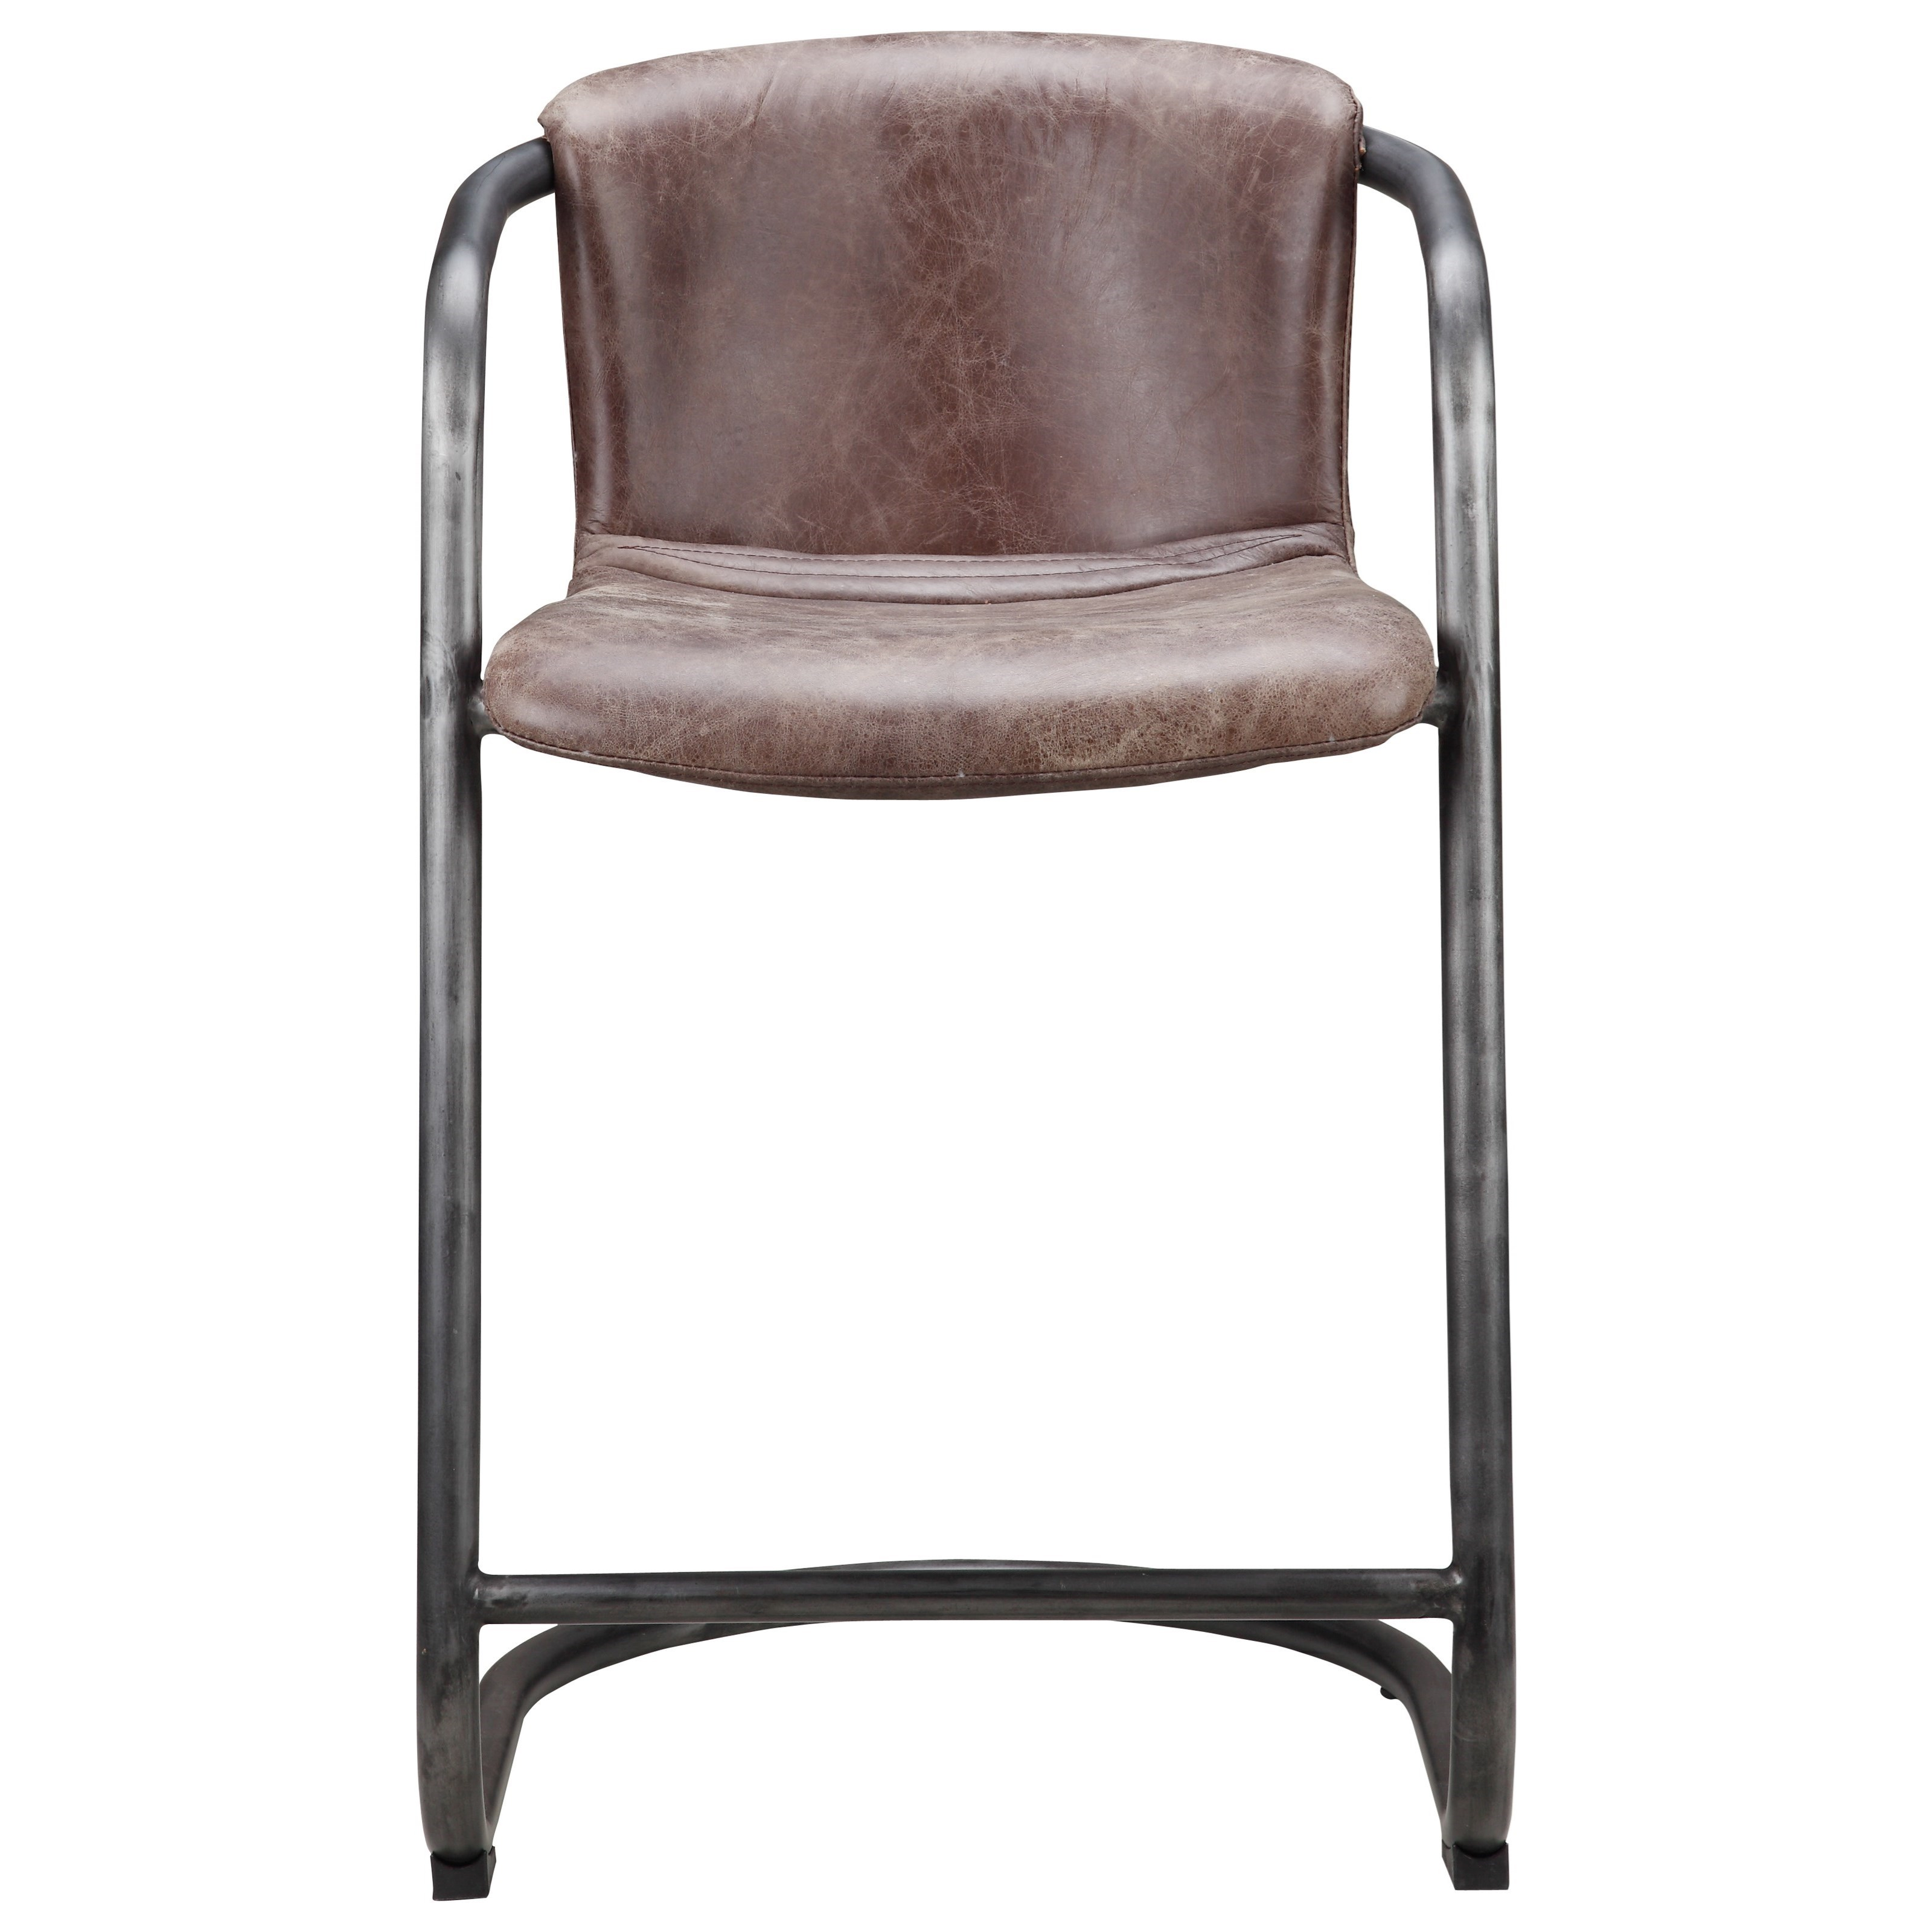 moe's home collection dining chairs freeman counter stool  stoney  - moe's home collection dining chairs freeman counter stool  item numberpk